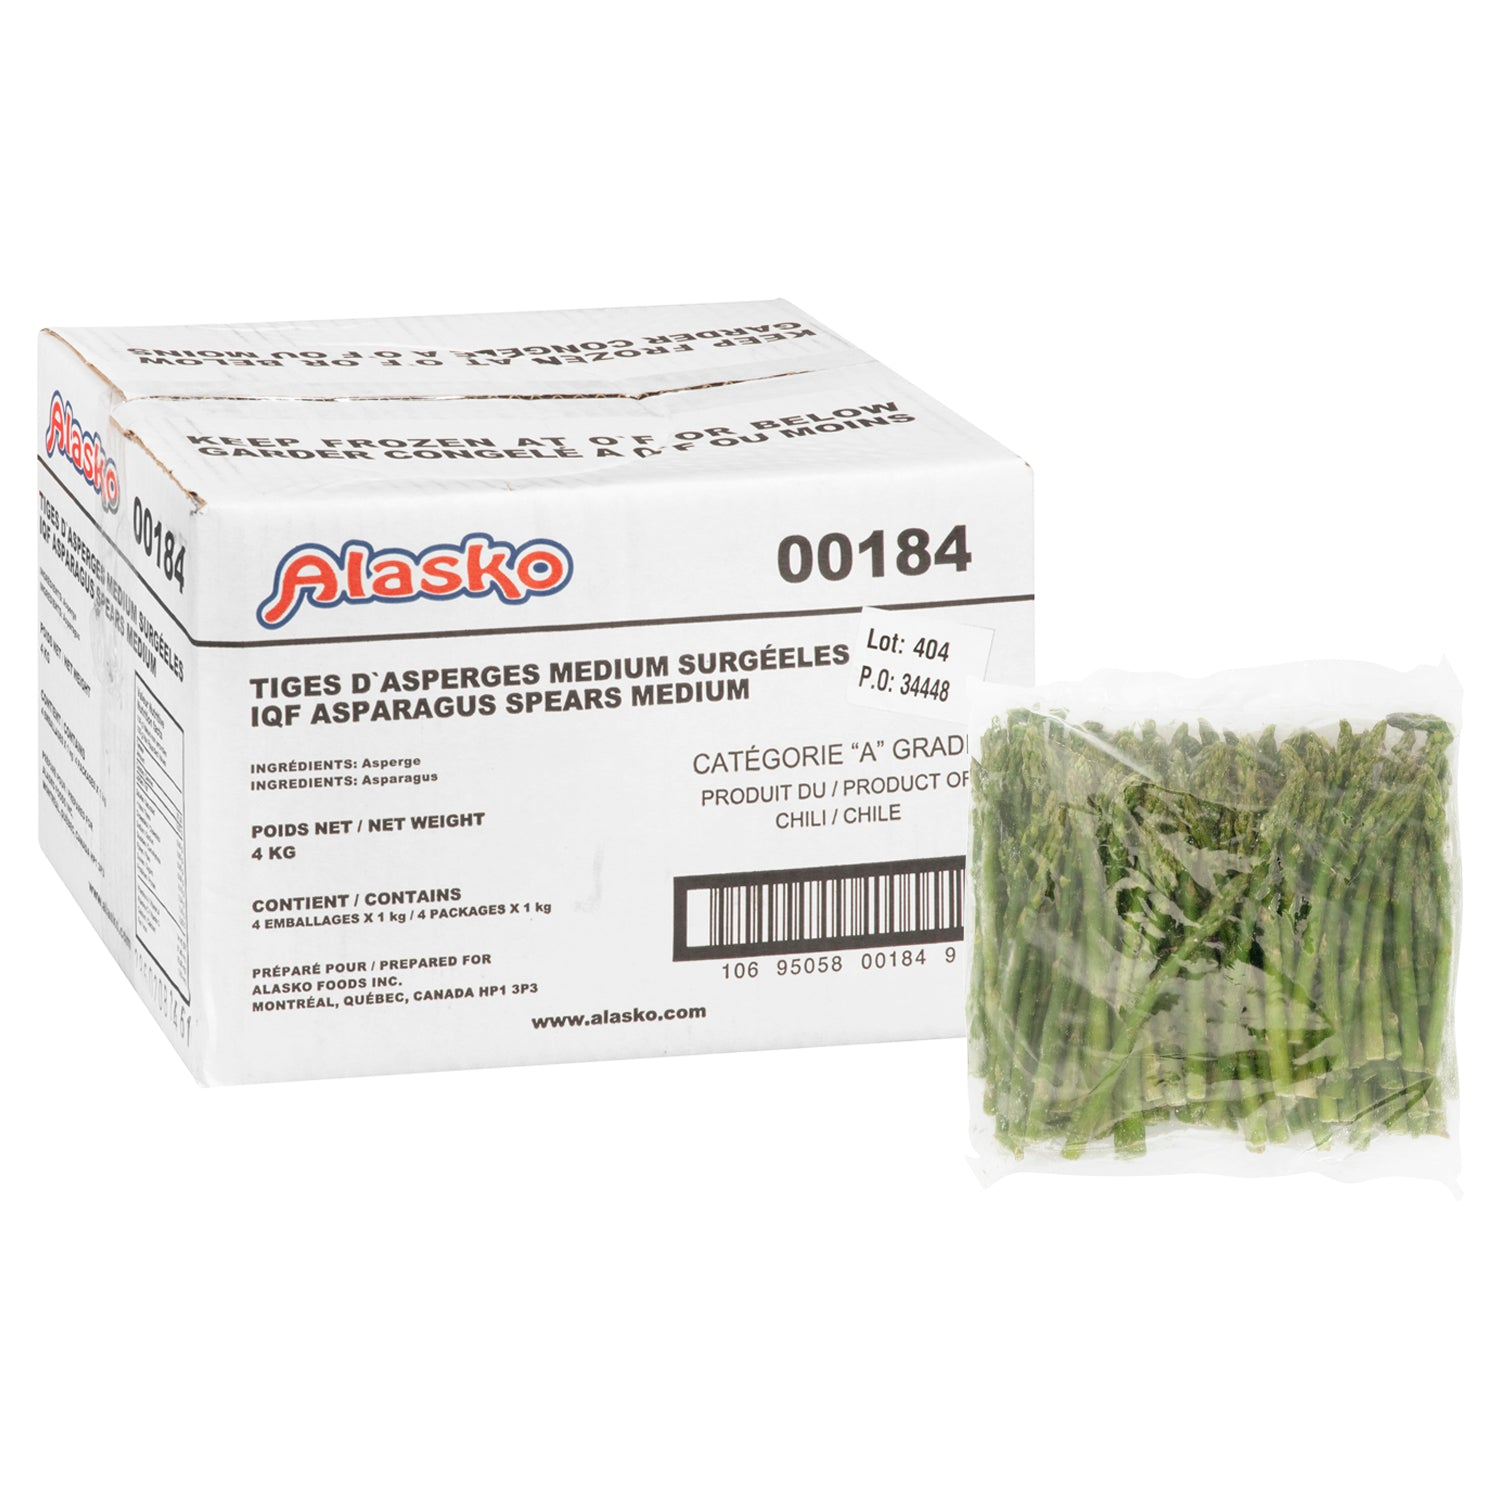 Alasko Individually Quick Frozen Asparagus Spears 1 kg - 4 Pack [$10.00/kg]